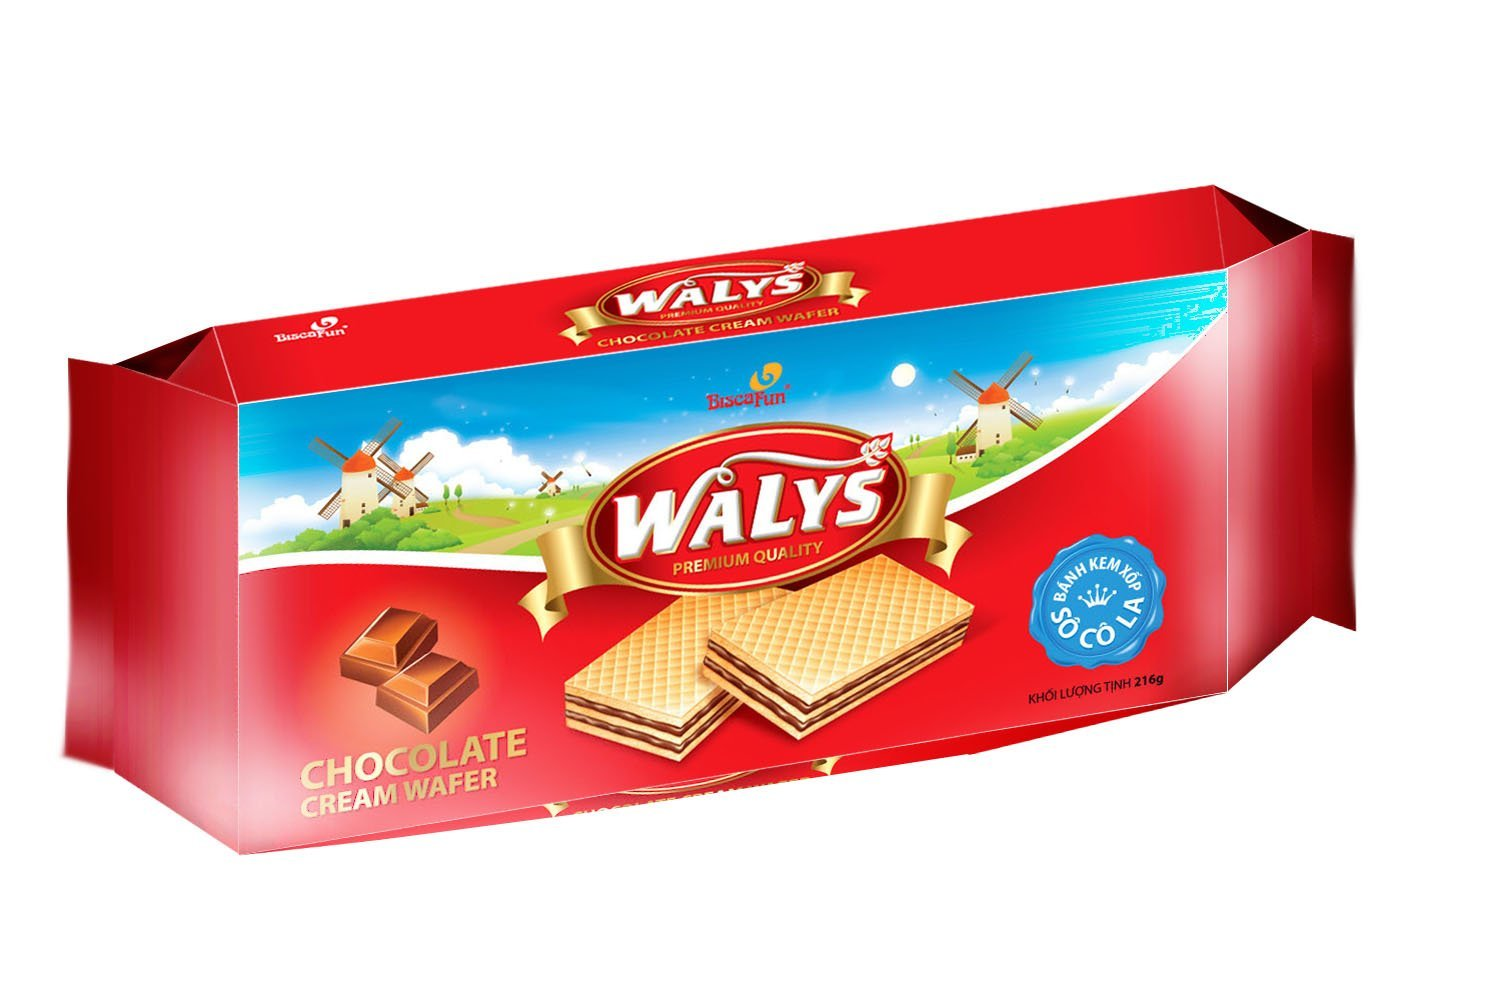 Waly's Cream Wafer